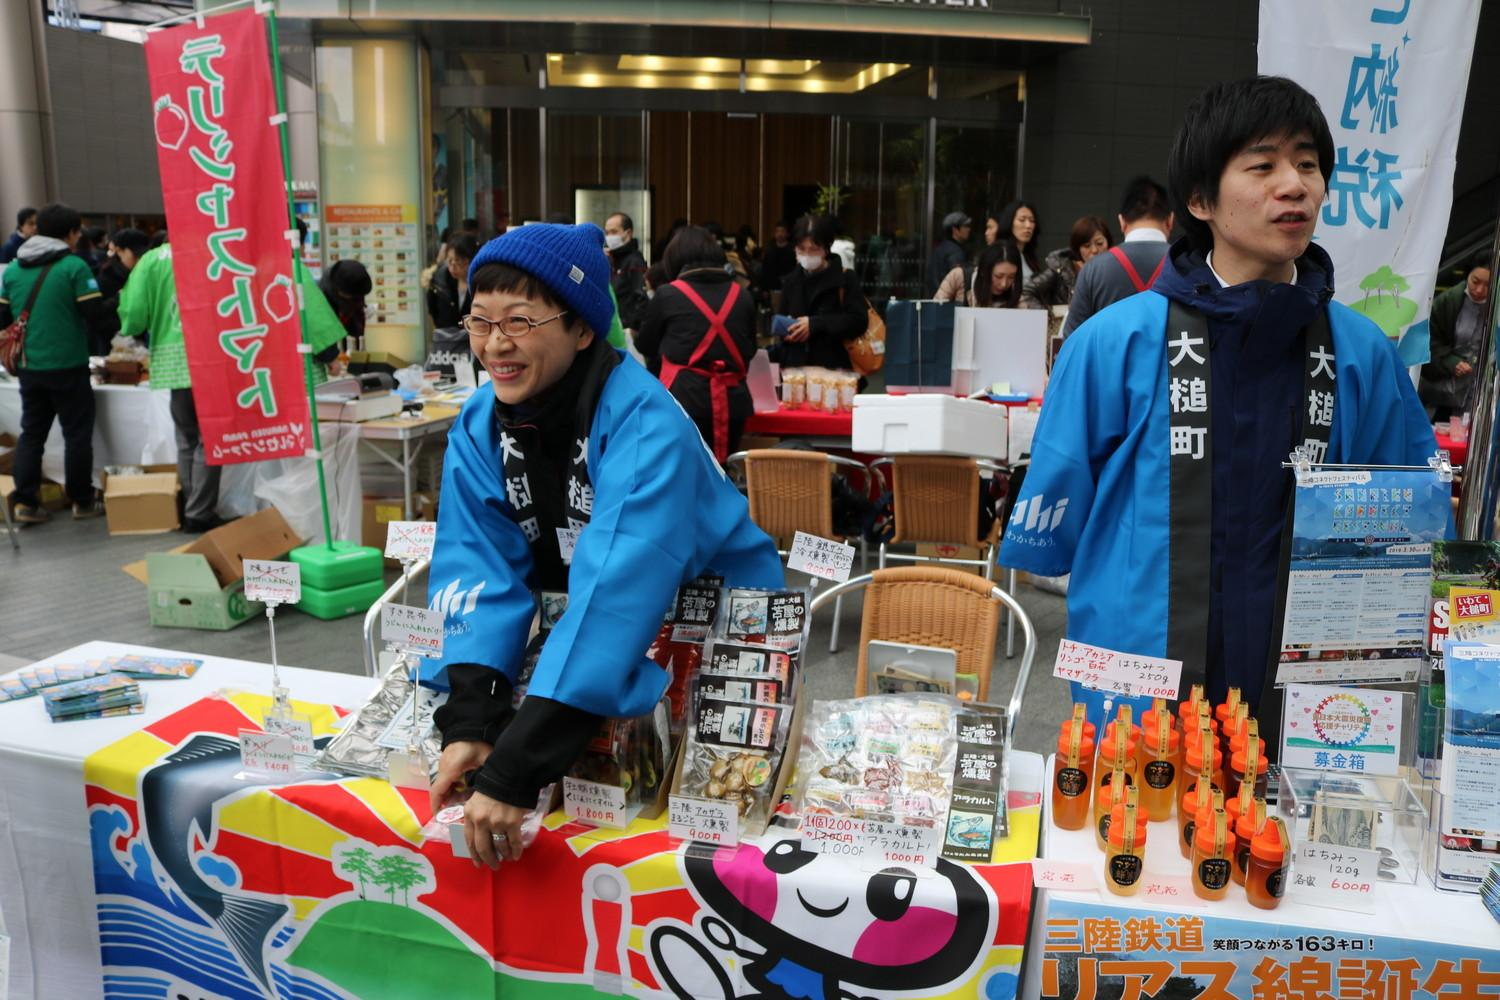 Representatives from the town of Otsuchi, Iwate Prefecture, brought local delicacies for Tokyo shoppers to enjoy.